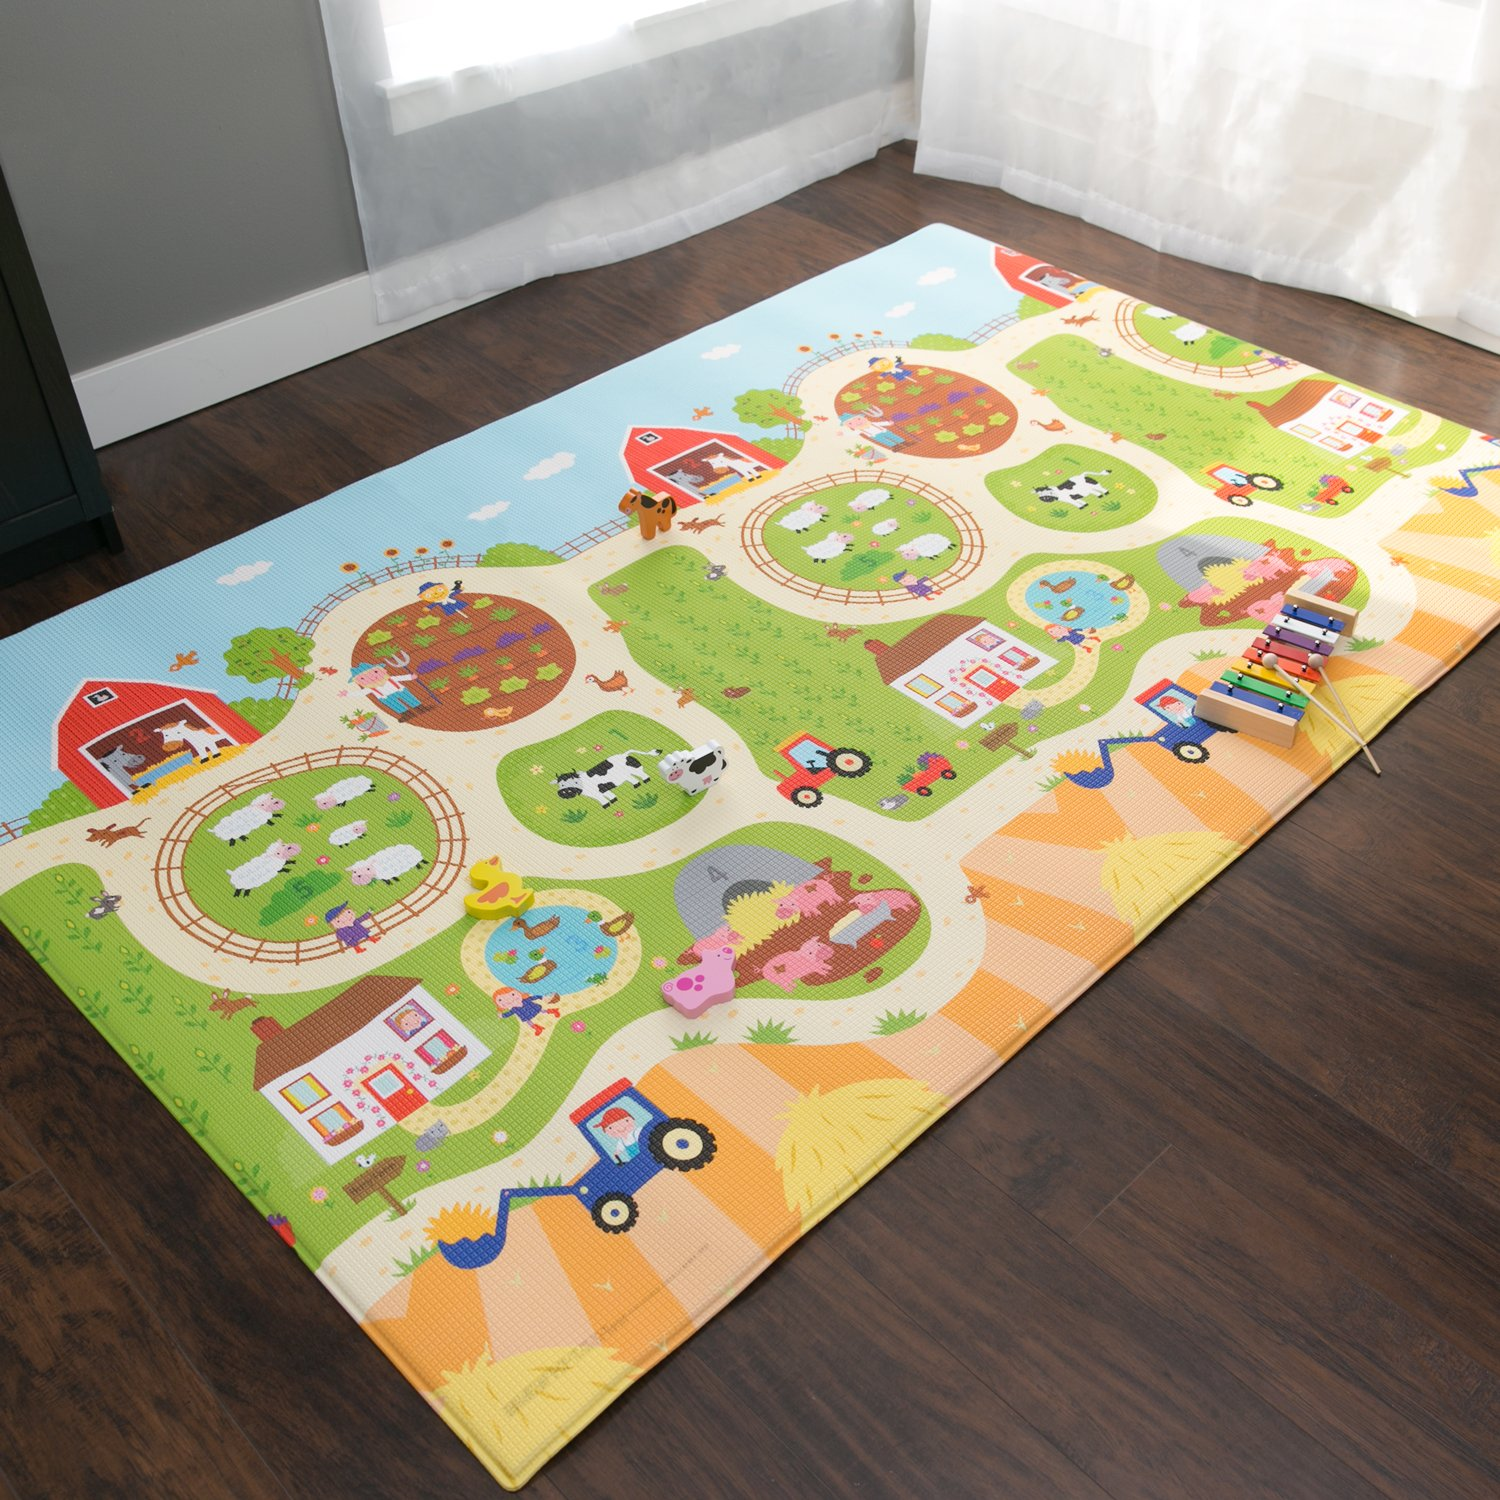 s pdx childrens portable mat floor children instant commercial playscapes baby play vandue corporation